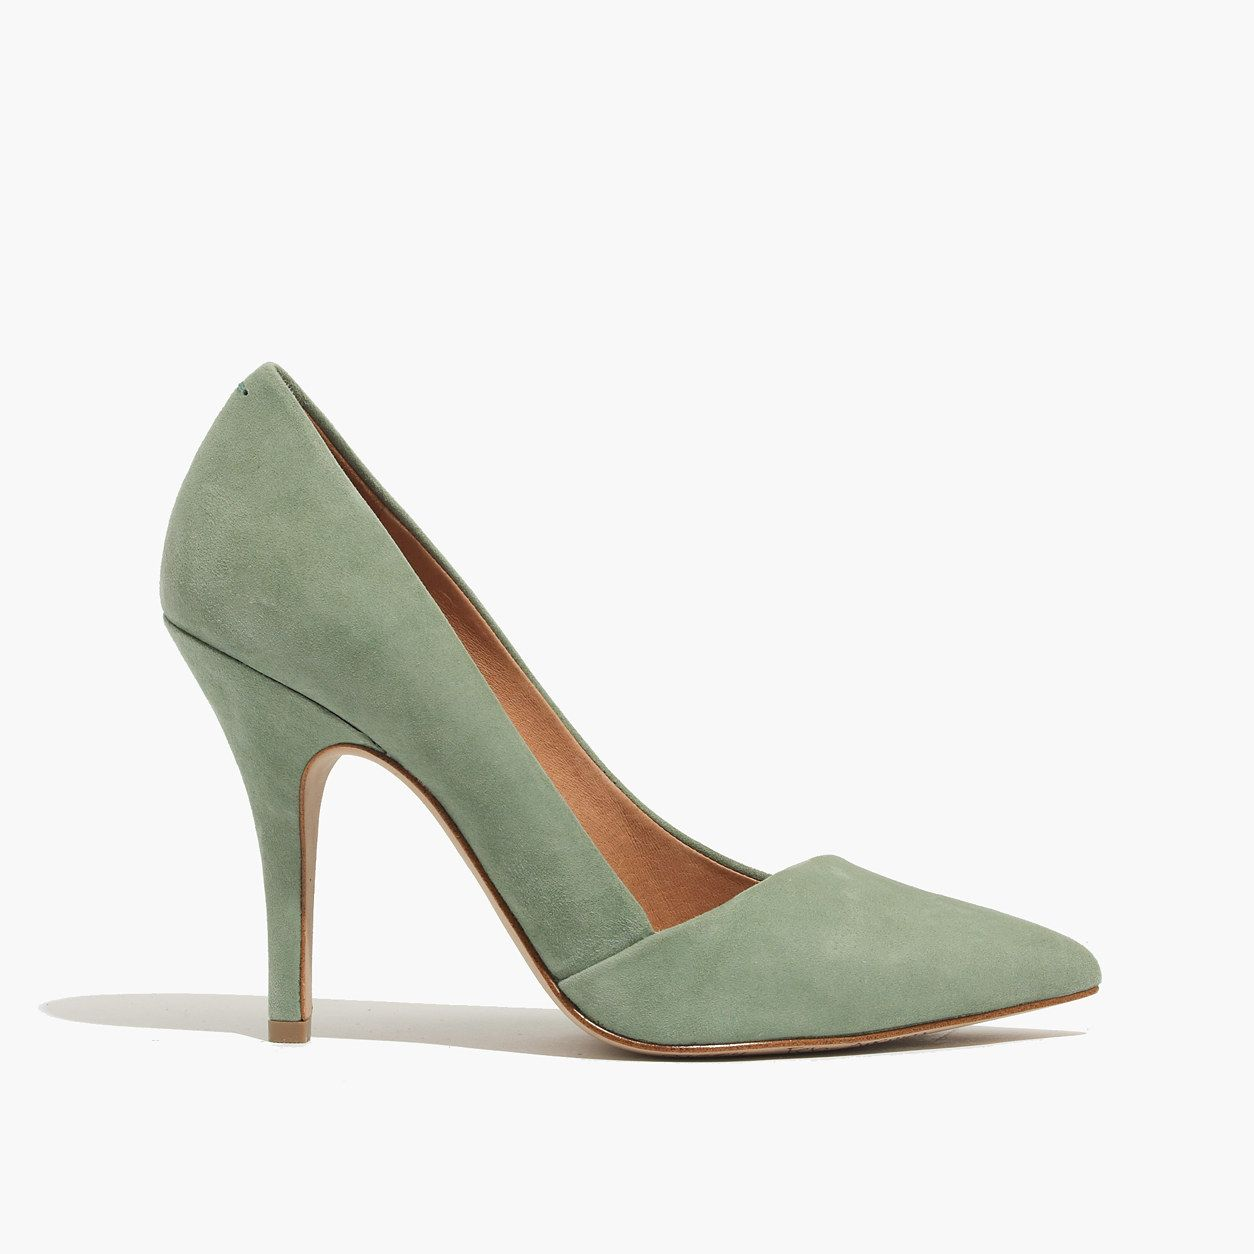 53b02f1caf9 Suede Sage Heel from Madewell